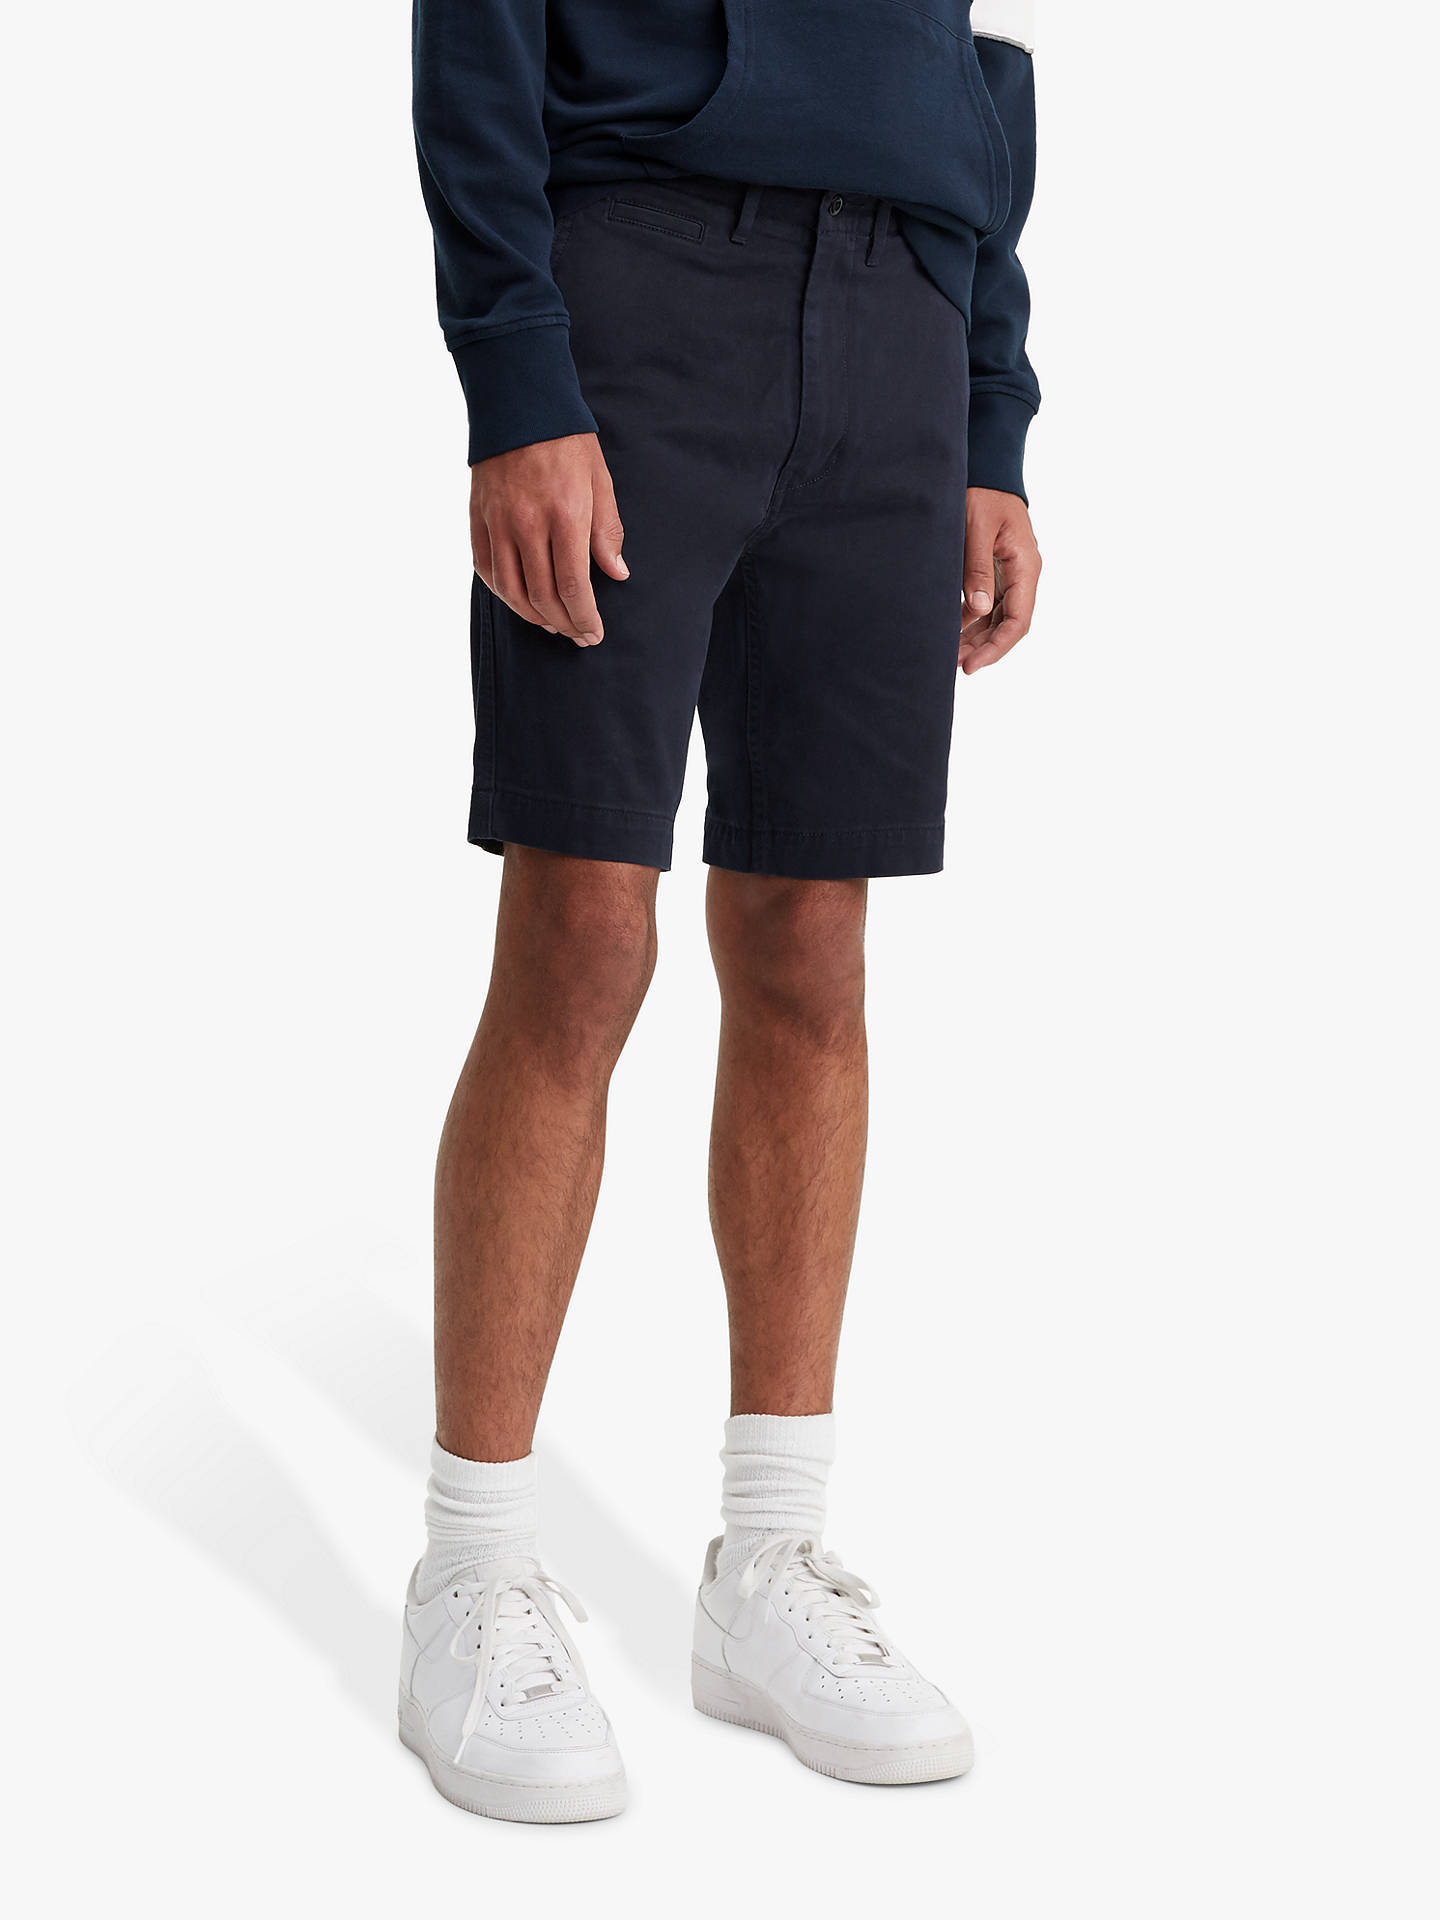 7a1c92b9 Buy Levi's 502 Chino Shorts, Nightwatch Blue, 34R Online at johnlewis. ...